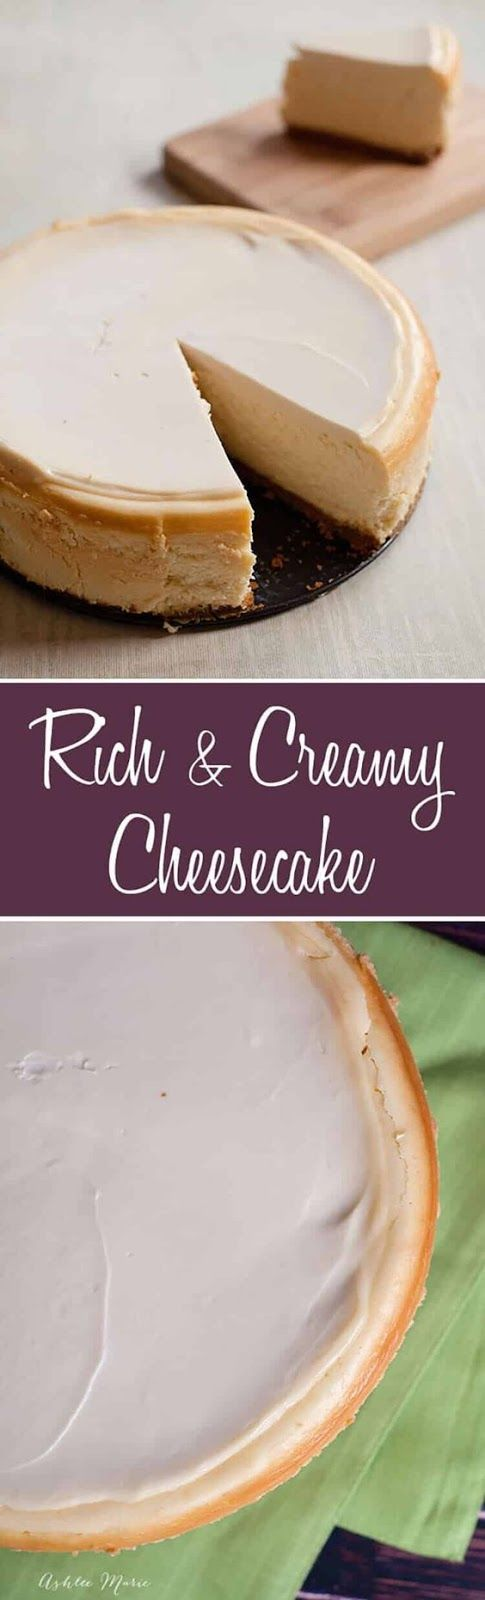 I have tried many cheesecakes over the years